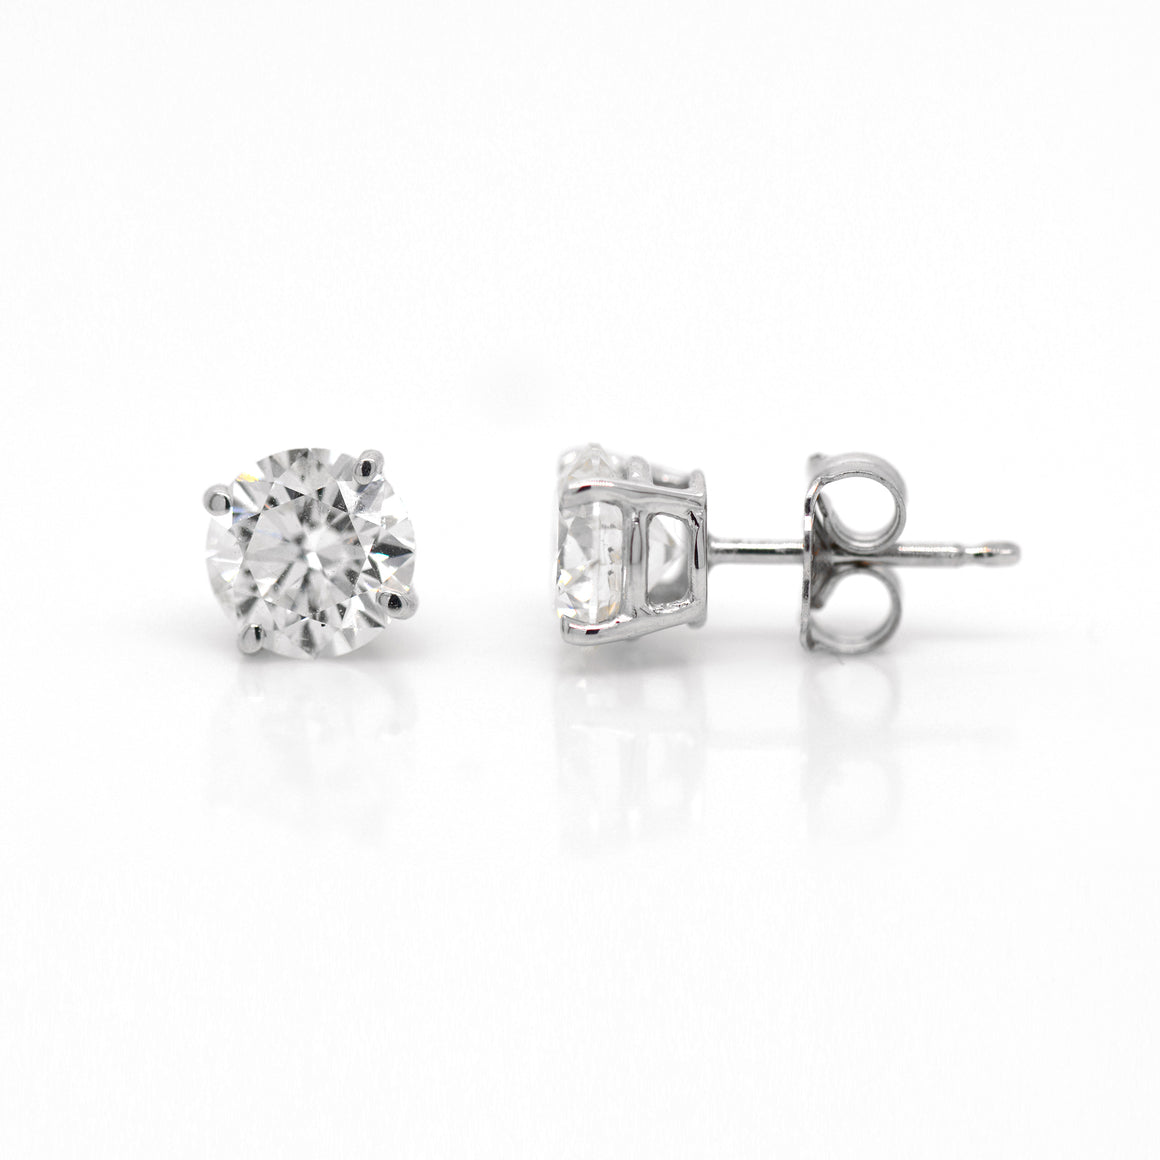 14K White Gold 1.70 Carat Diamond Studs